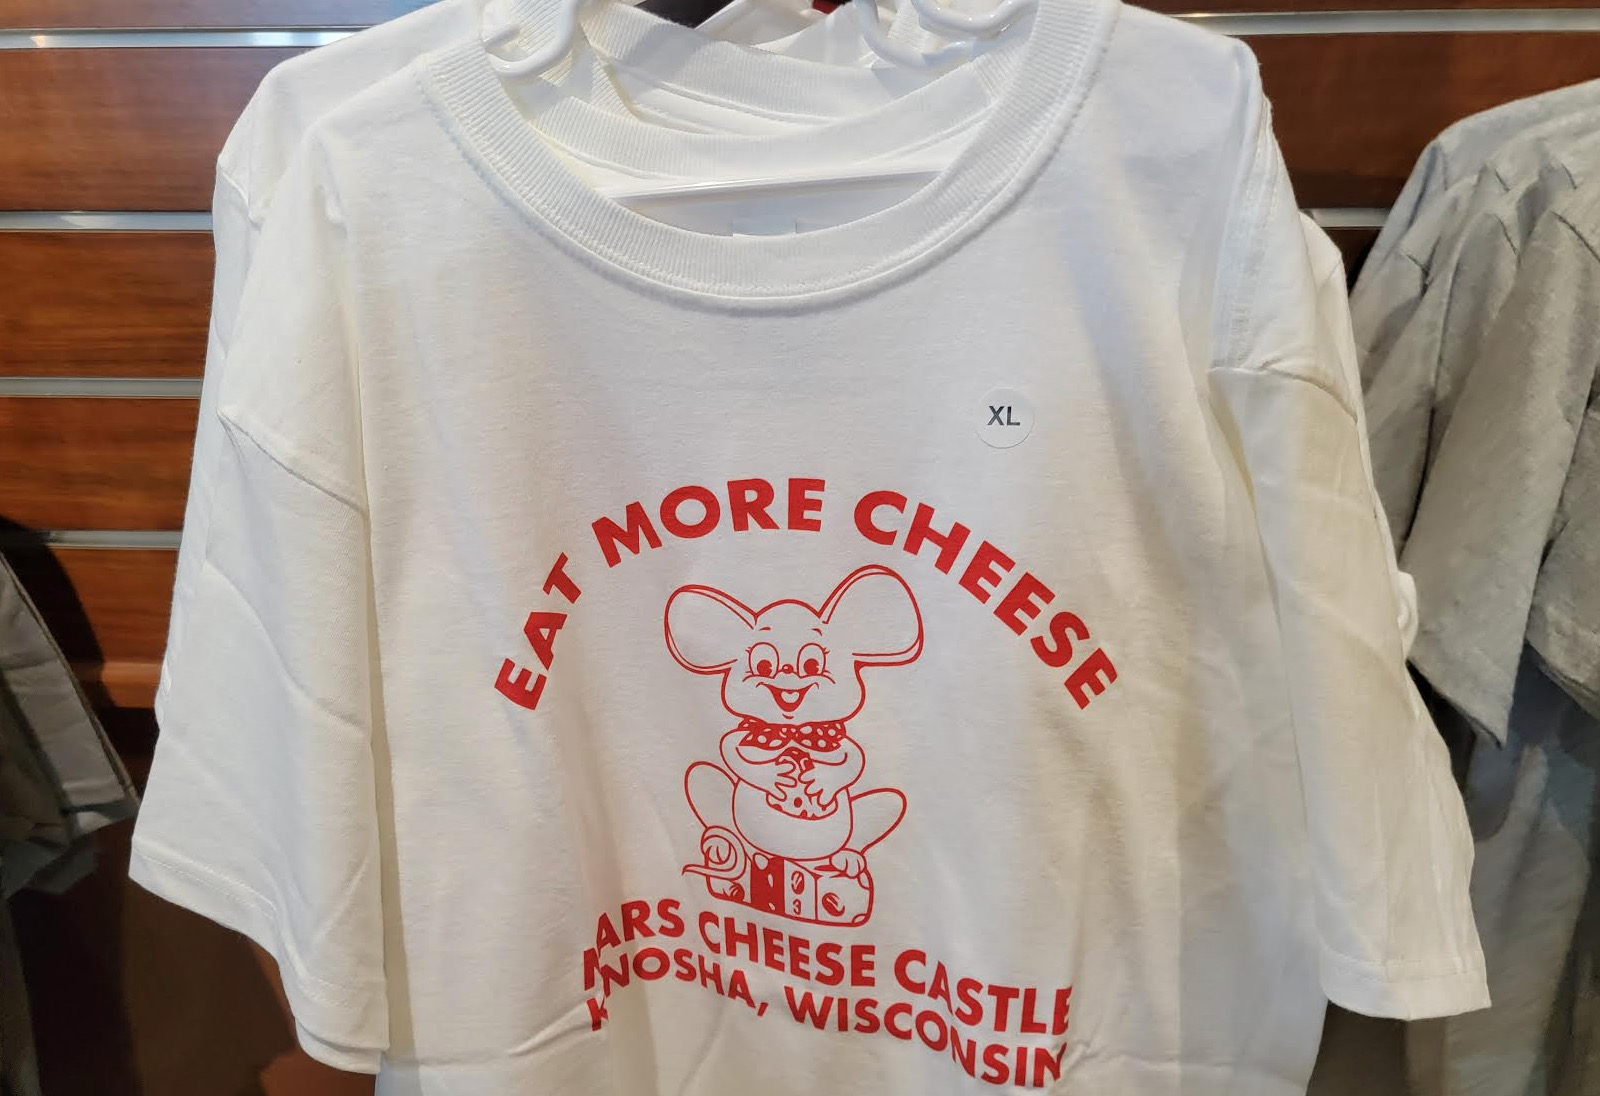 eat more cheese t-shirt